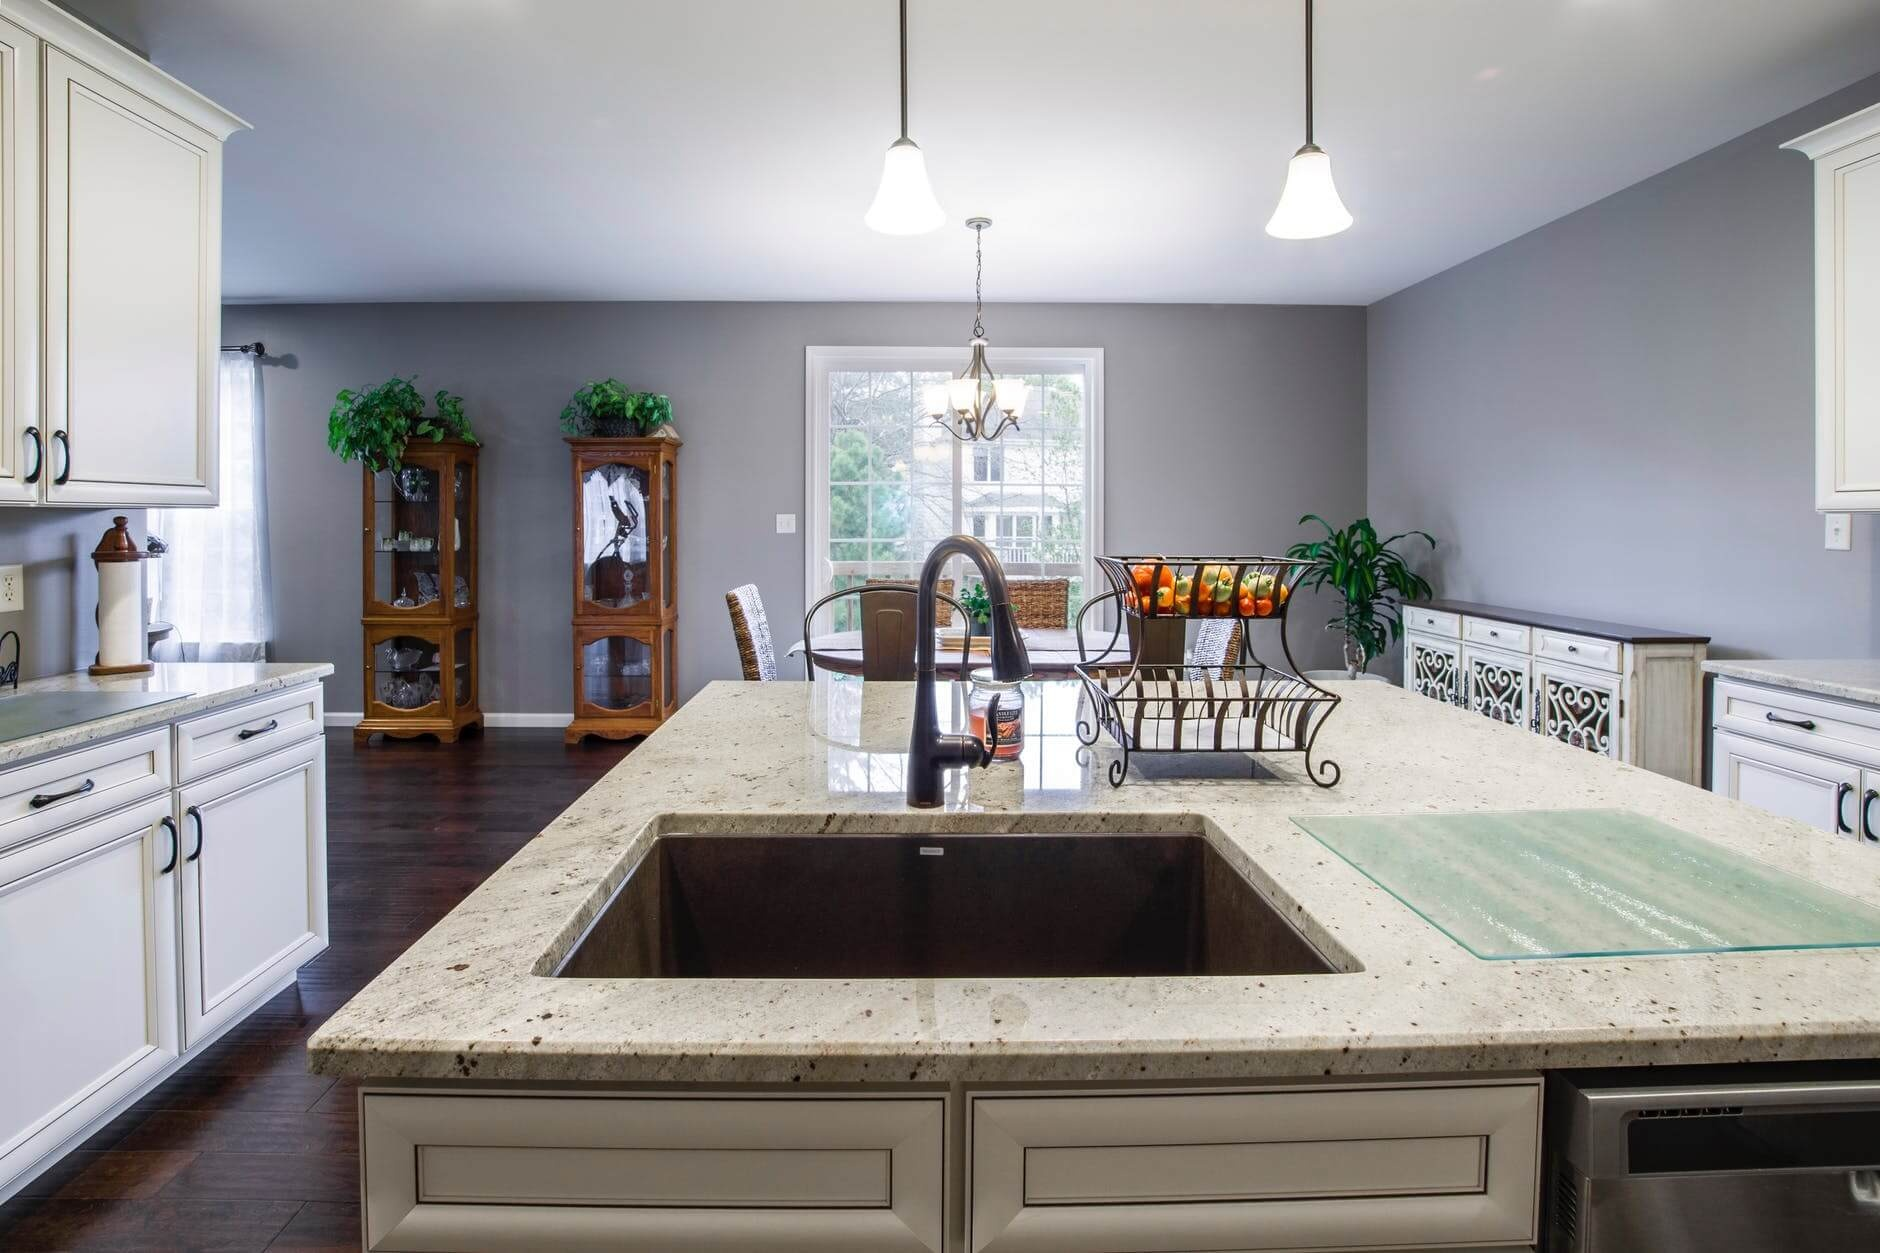 What Kind Of Material Would You Choose For Your Kitchen